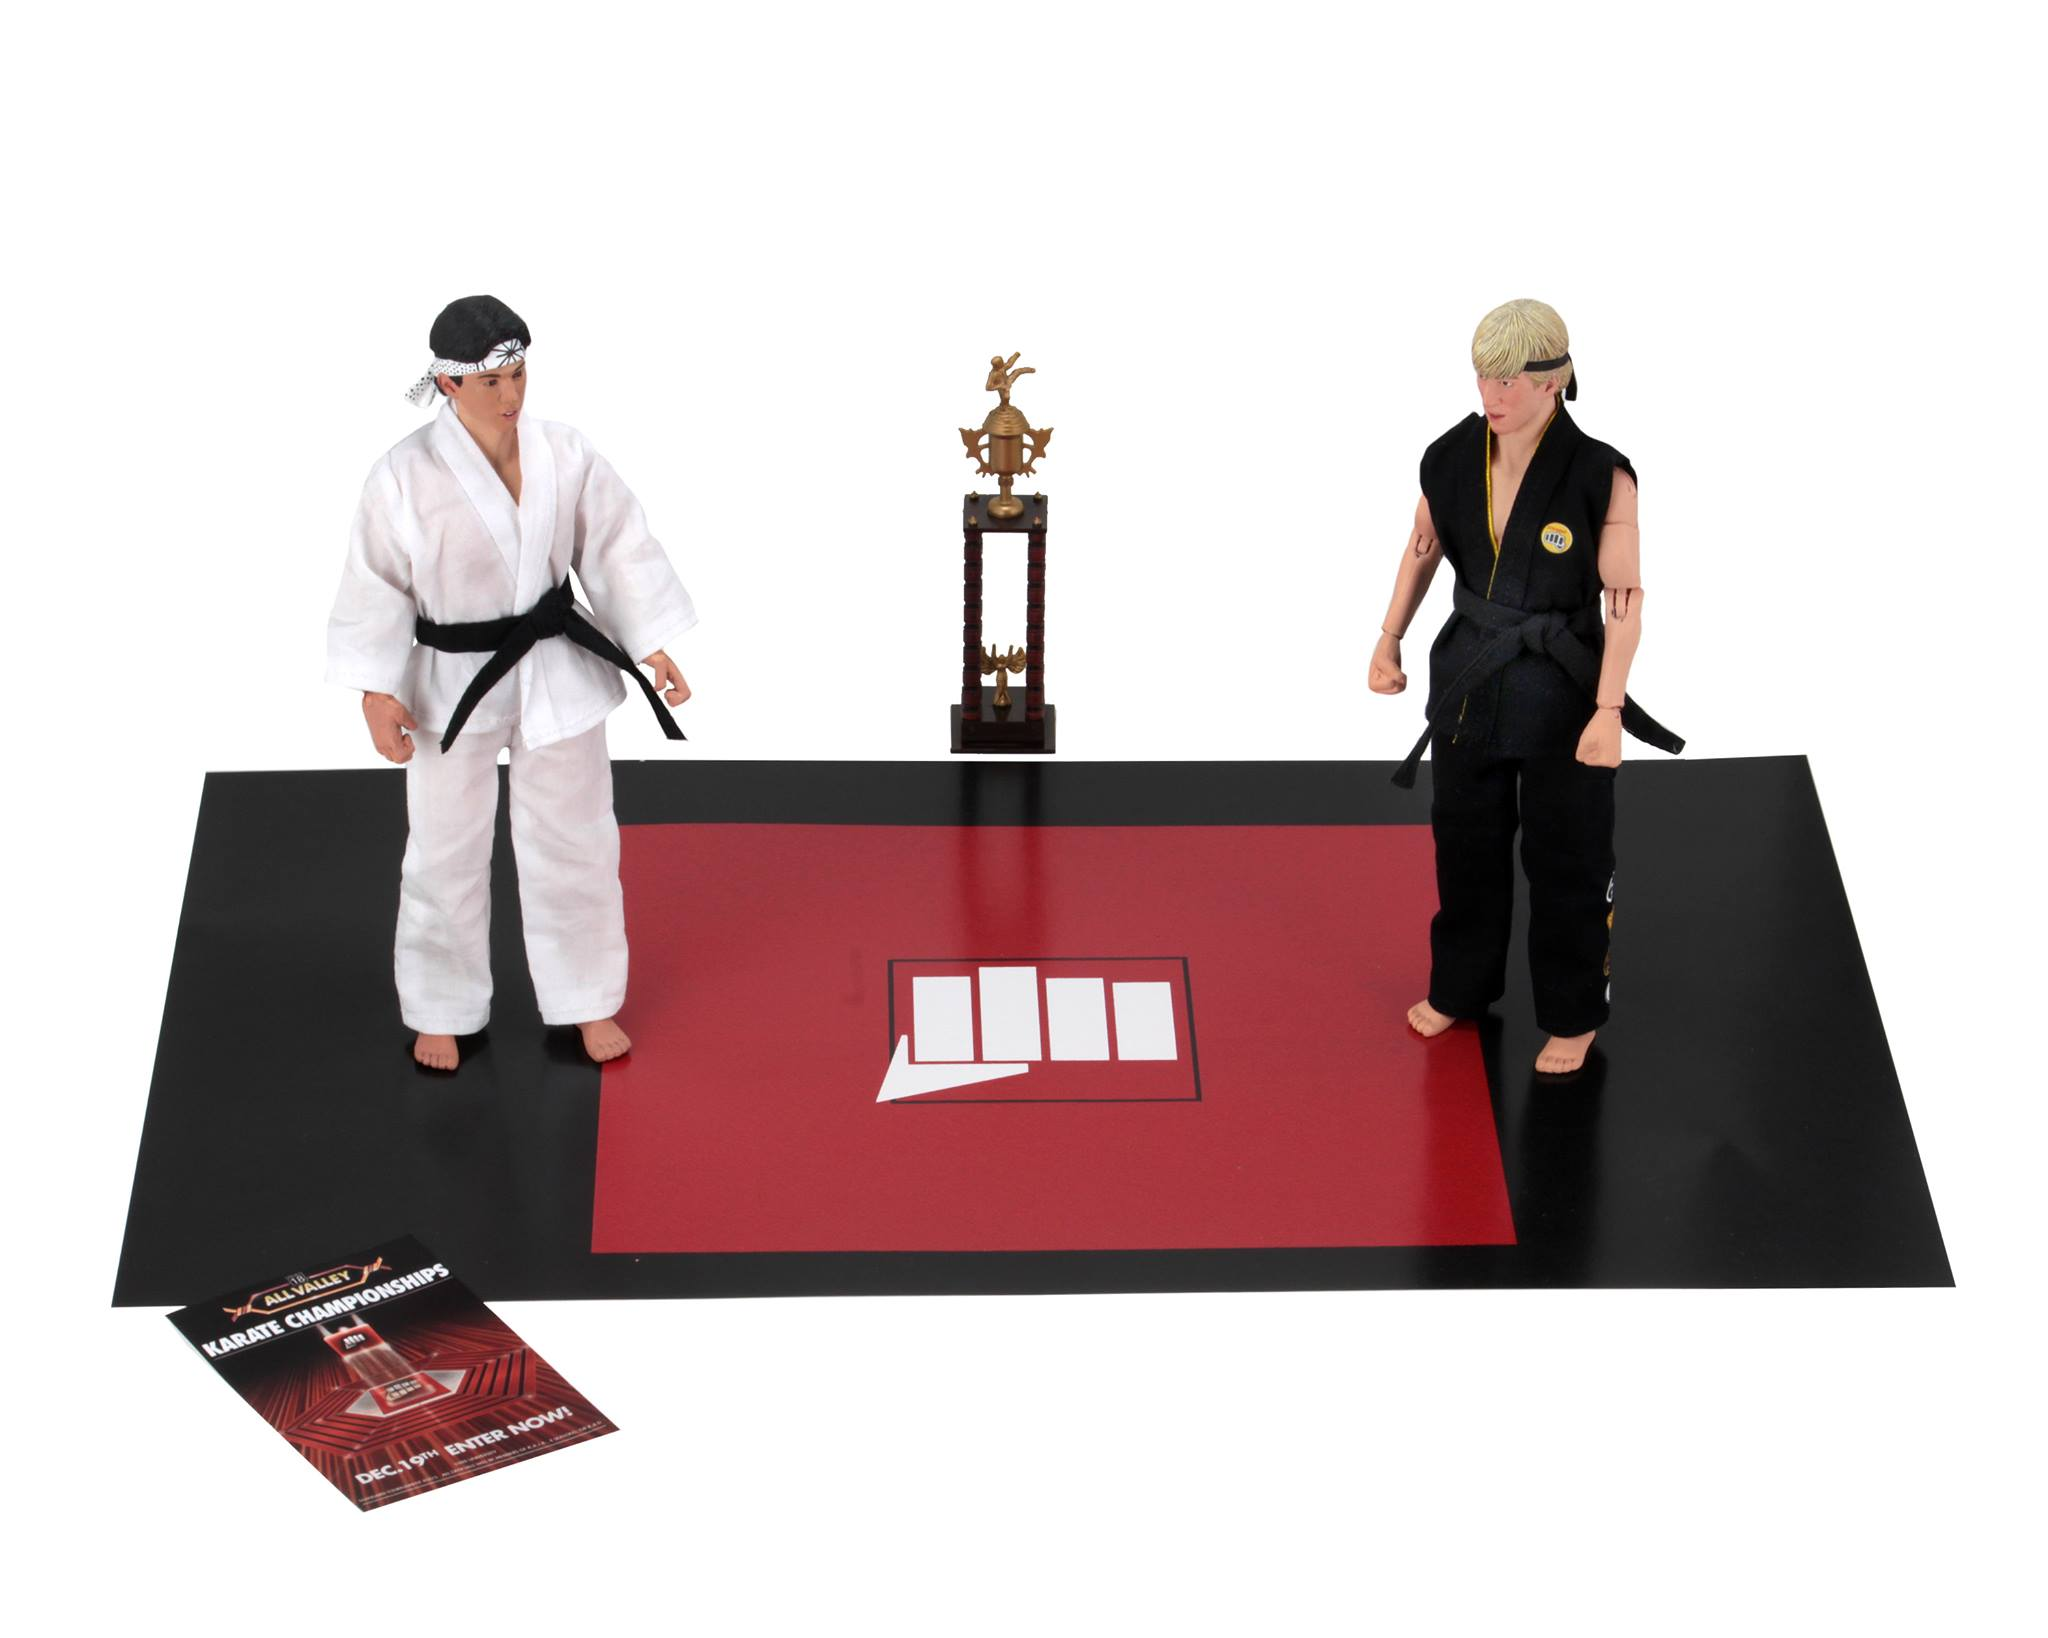 NECA Toys The Karate Kid Clothed 8″ Figure Assortment & Tournament 2-Pack Available Now